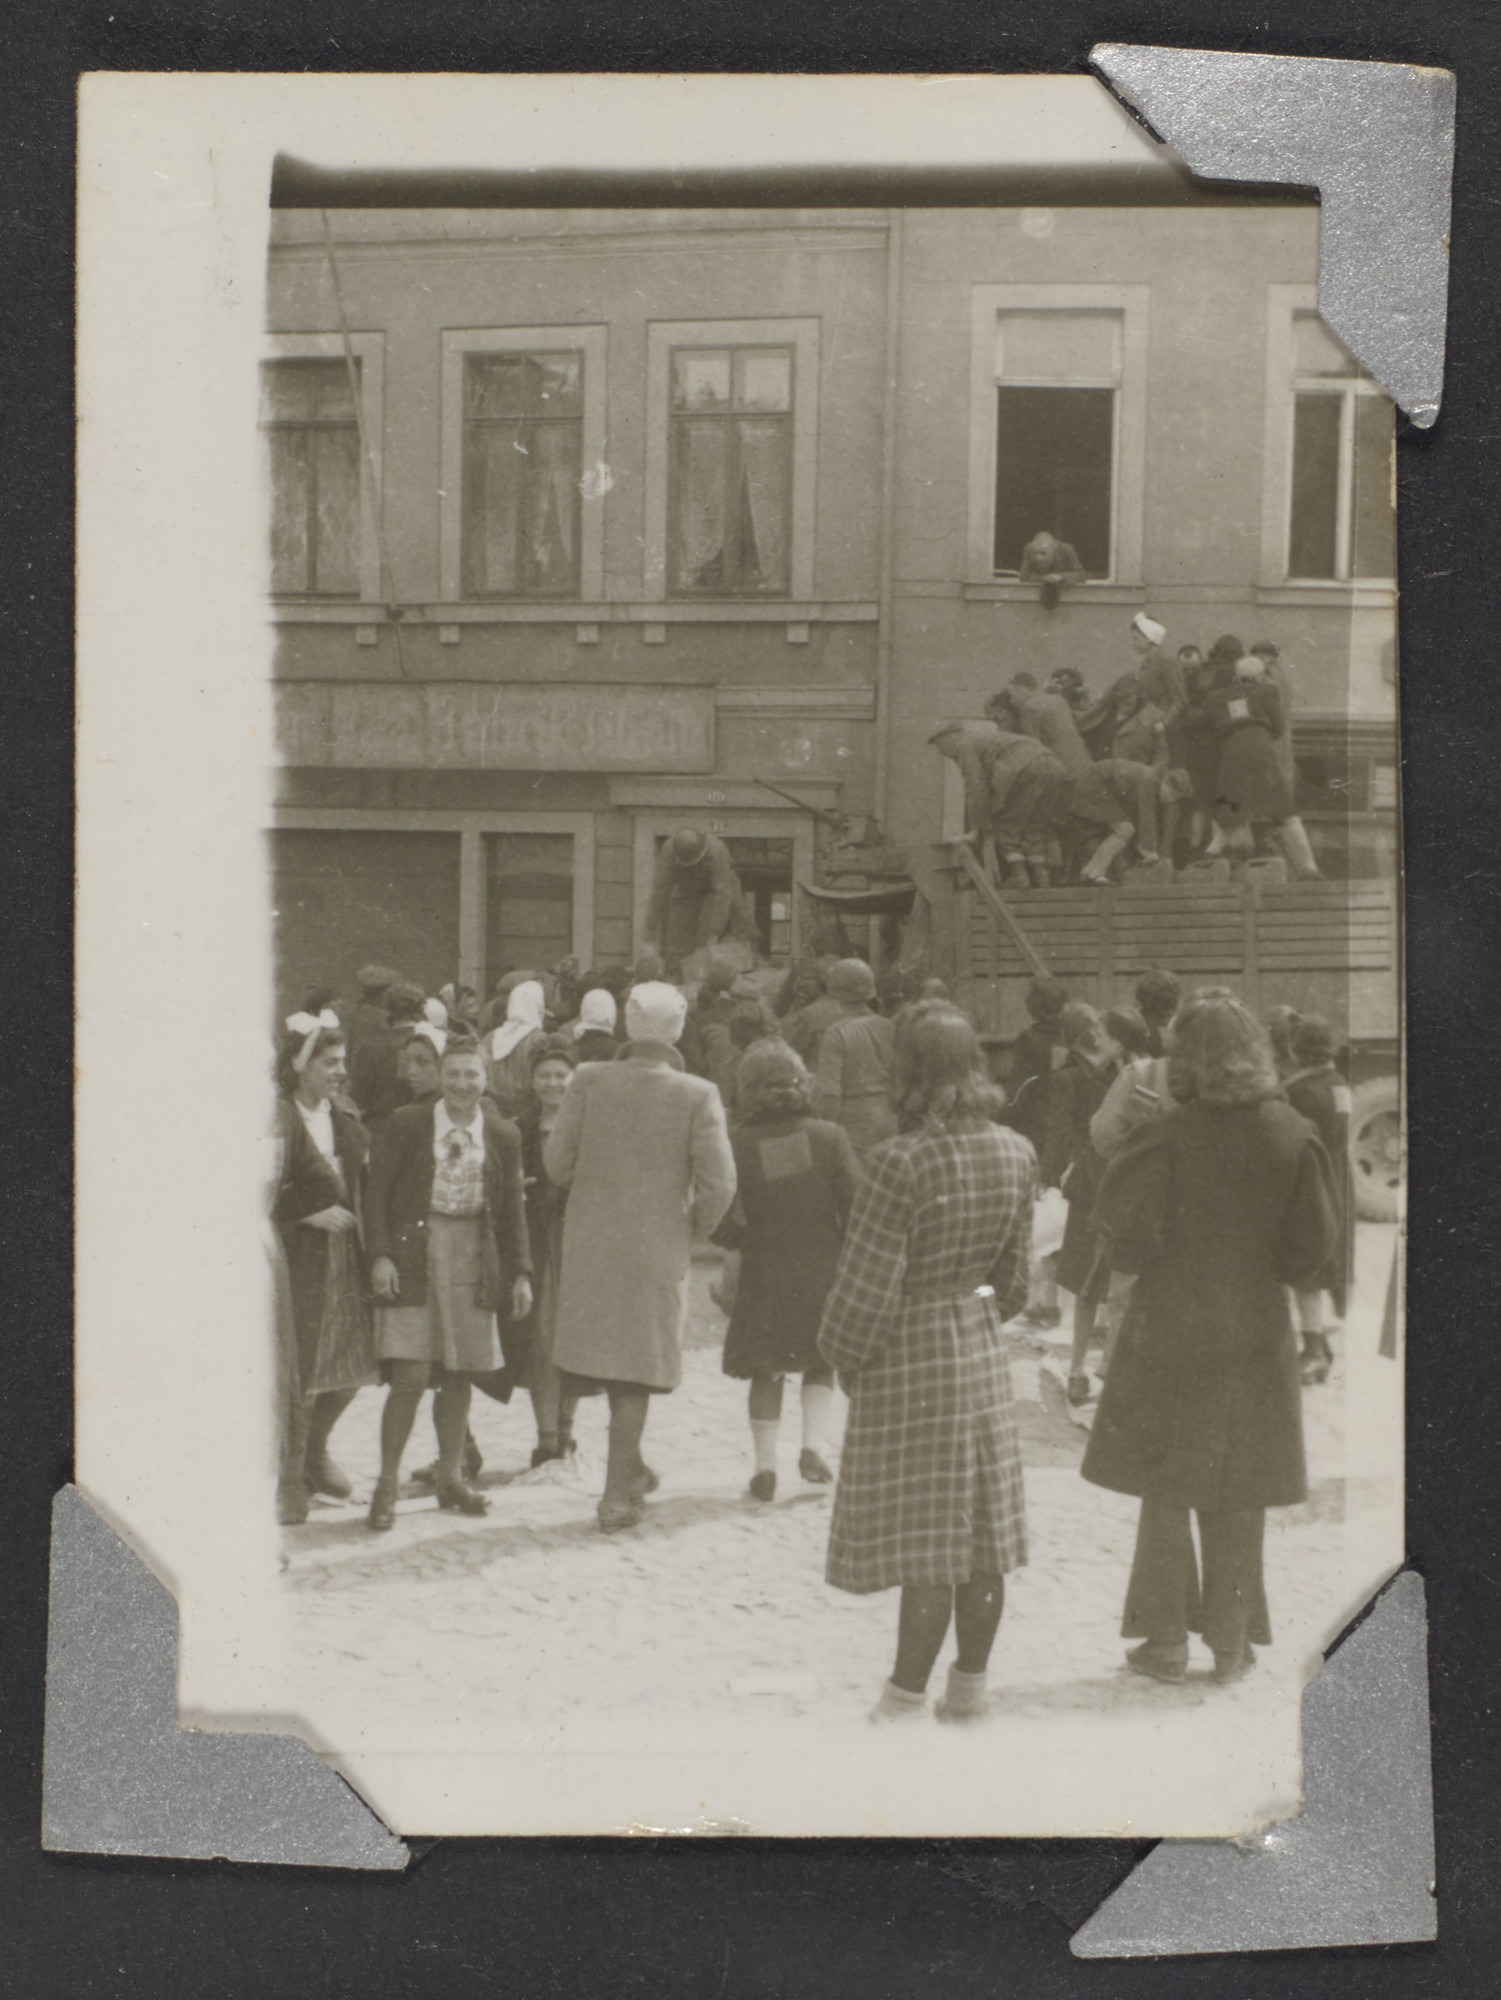 Hungarian refugees gather in the street in Waldenburg.  Original Caption: Nice clothes were no doubt liberated previous to time picture was taken. Refugees in Waldenberg. April 1945.